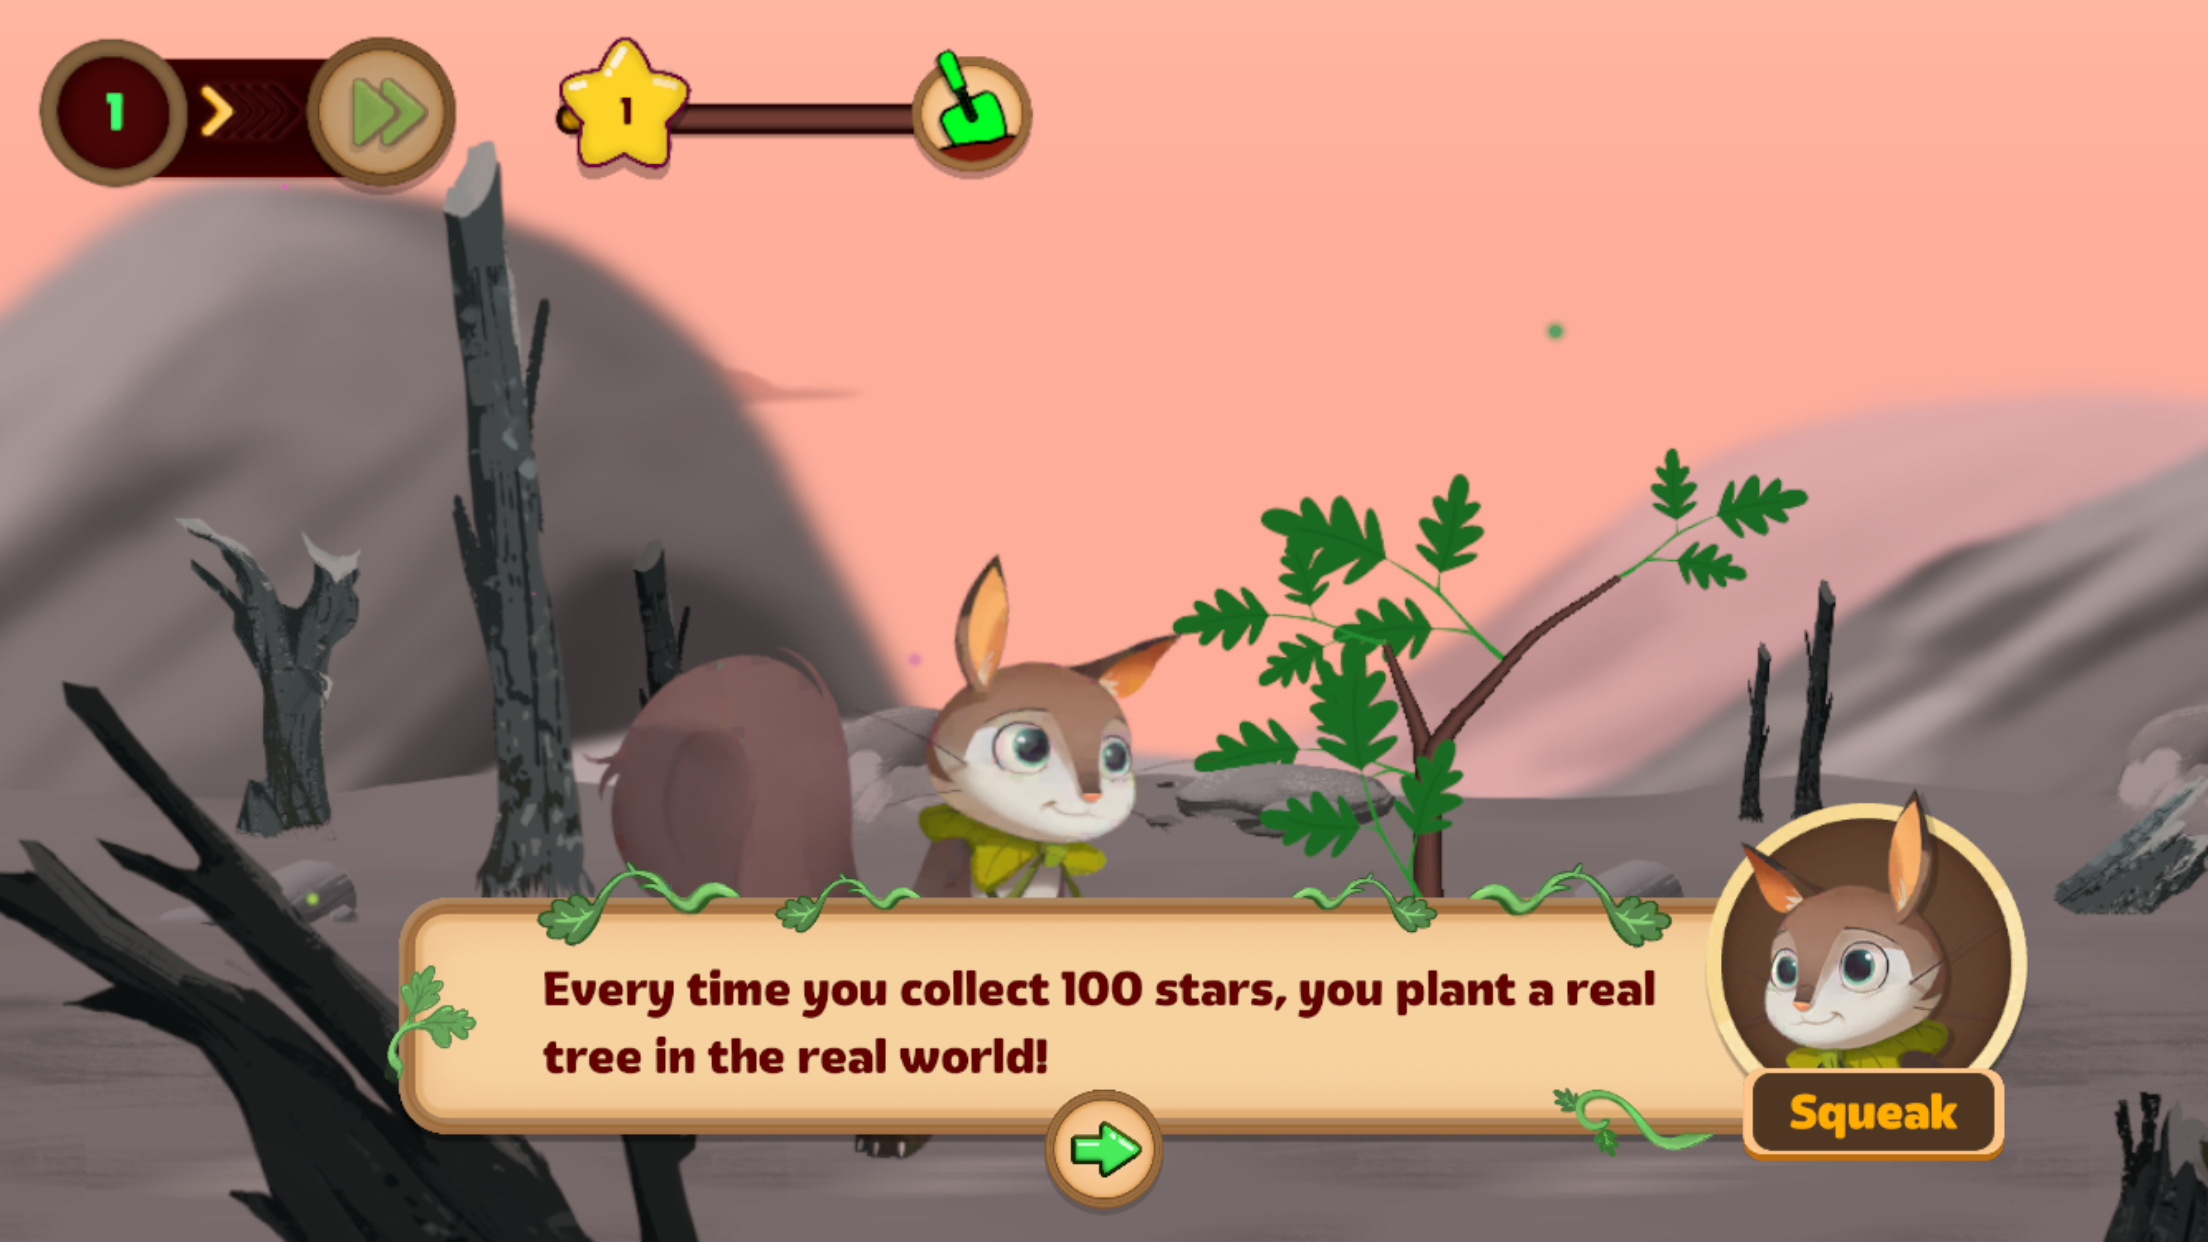 Plant Real Trees